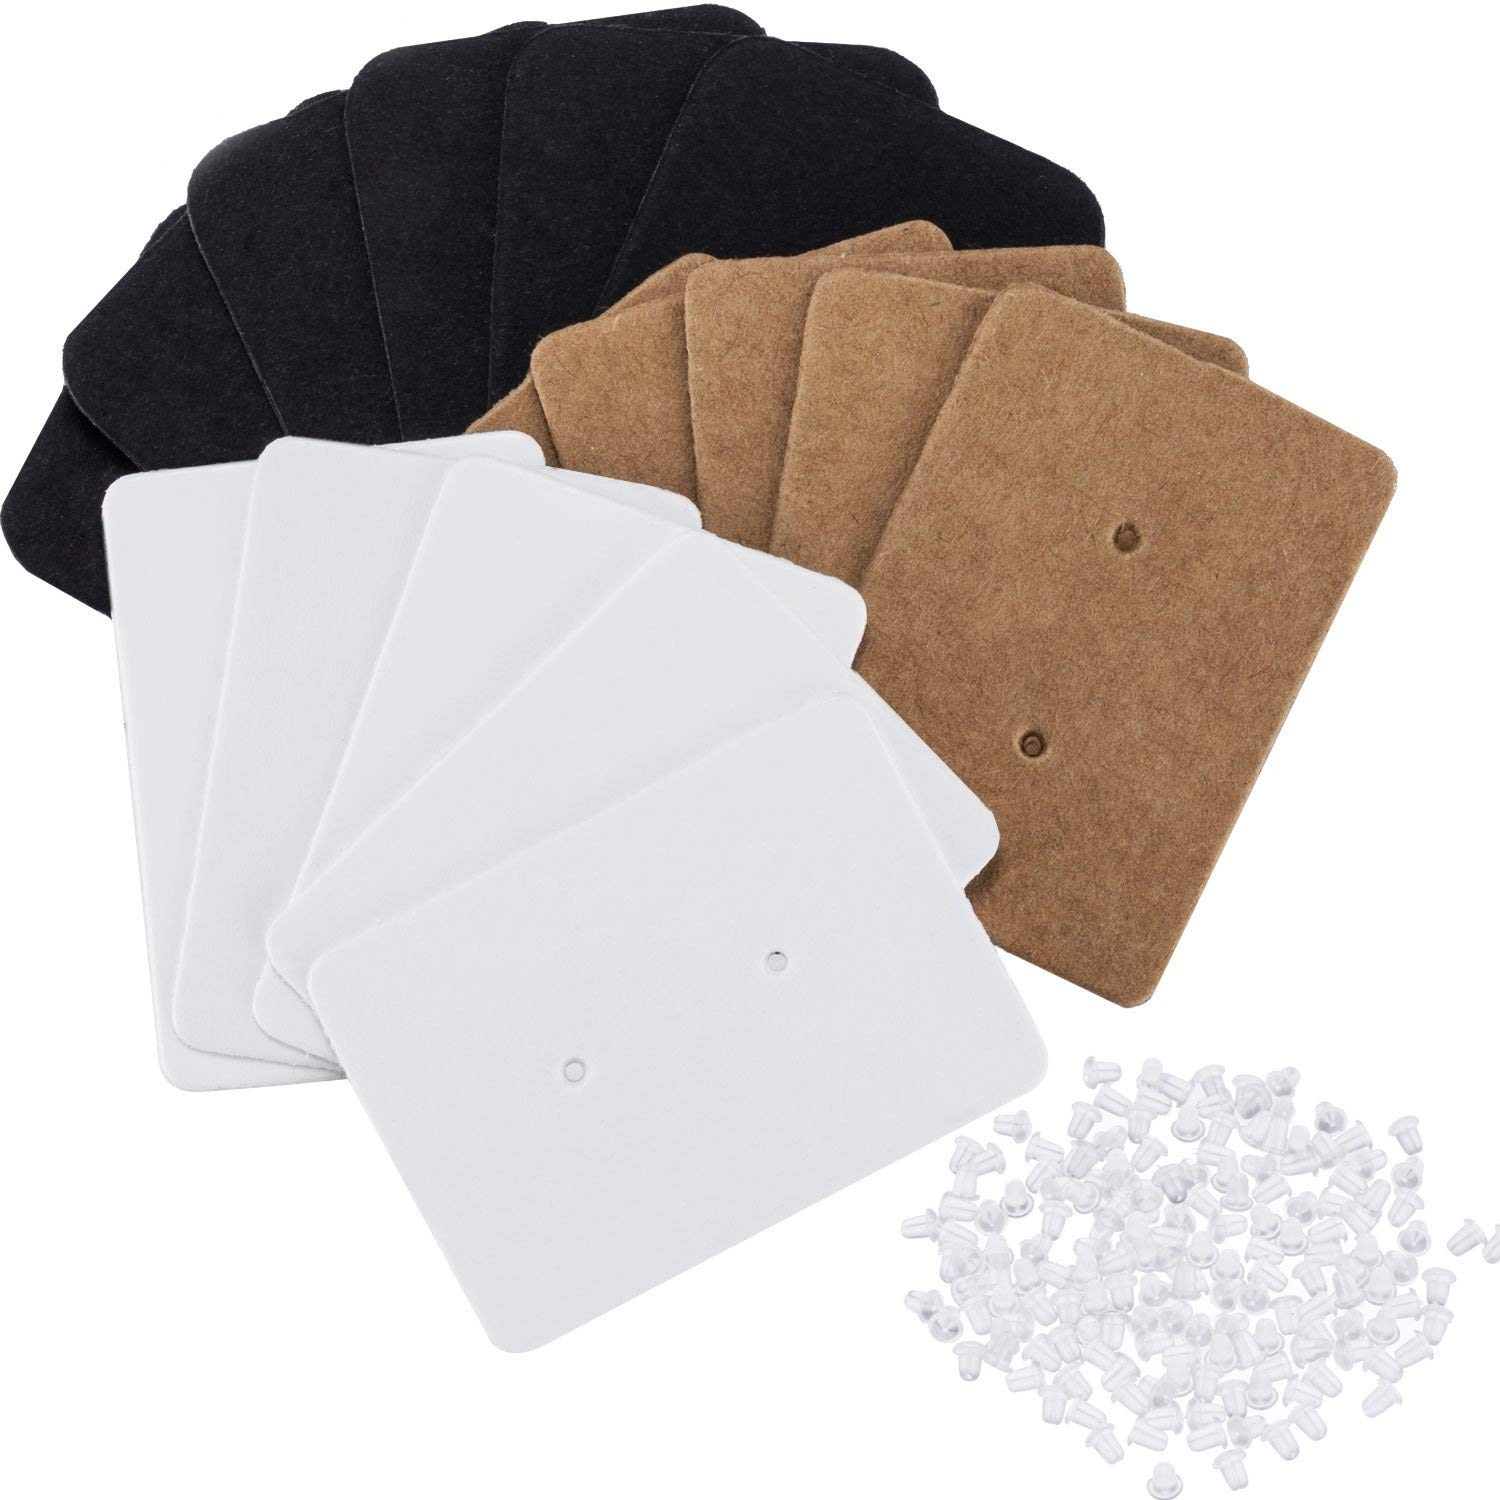 Canomo 300 Pieces Paper Jewelry Earring Display Cards Ear Stud Tags with 600 Pieces Clear Rubber Bullet Clutch Earring Safety Backs